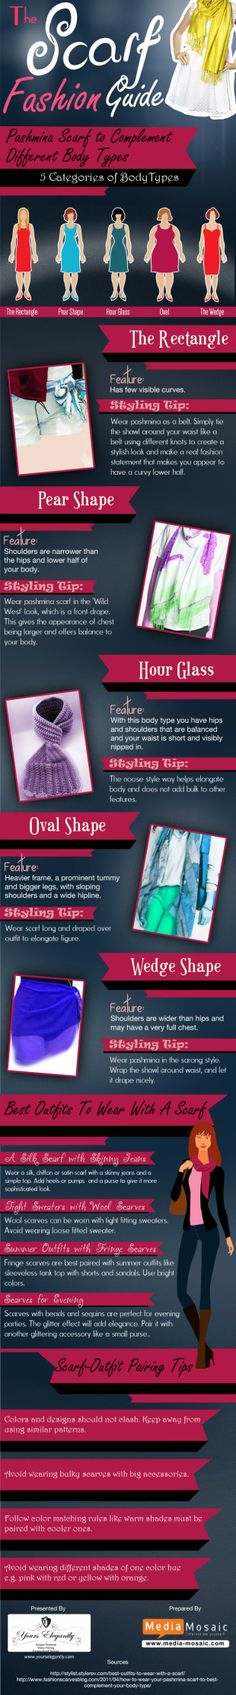 Fashion infographic & data visualisation The Scarf Fashion Guide: Time to Flaunt your Persona image The Sca. Infographic Description The Scarf Fashion Fashion Advice, Diy Fashion, Fashion Beauty, Fashion Guide, Woman Fashion, Fall Fashion, Fashion Infographic, Fashion Vocabulary, Cool Style